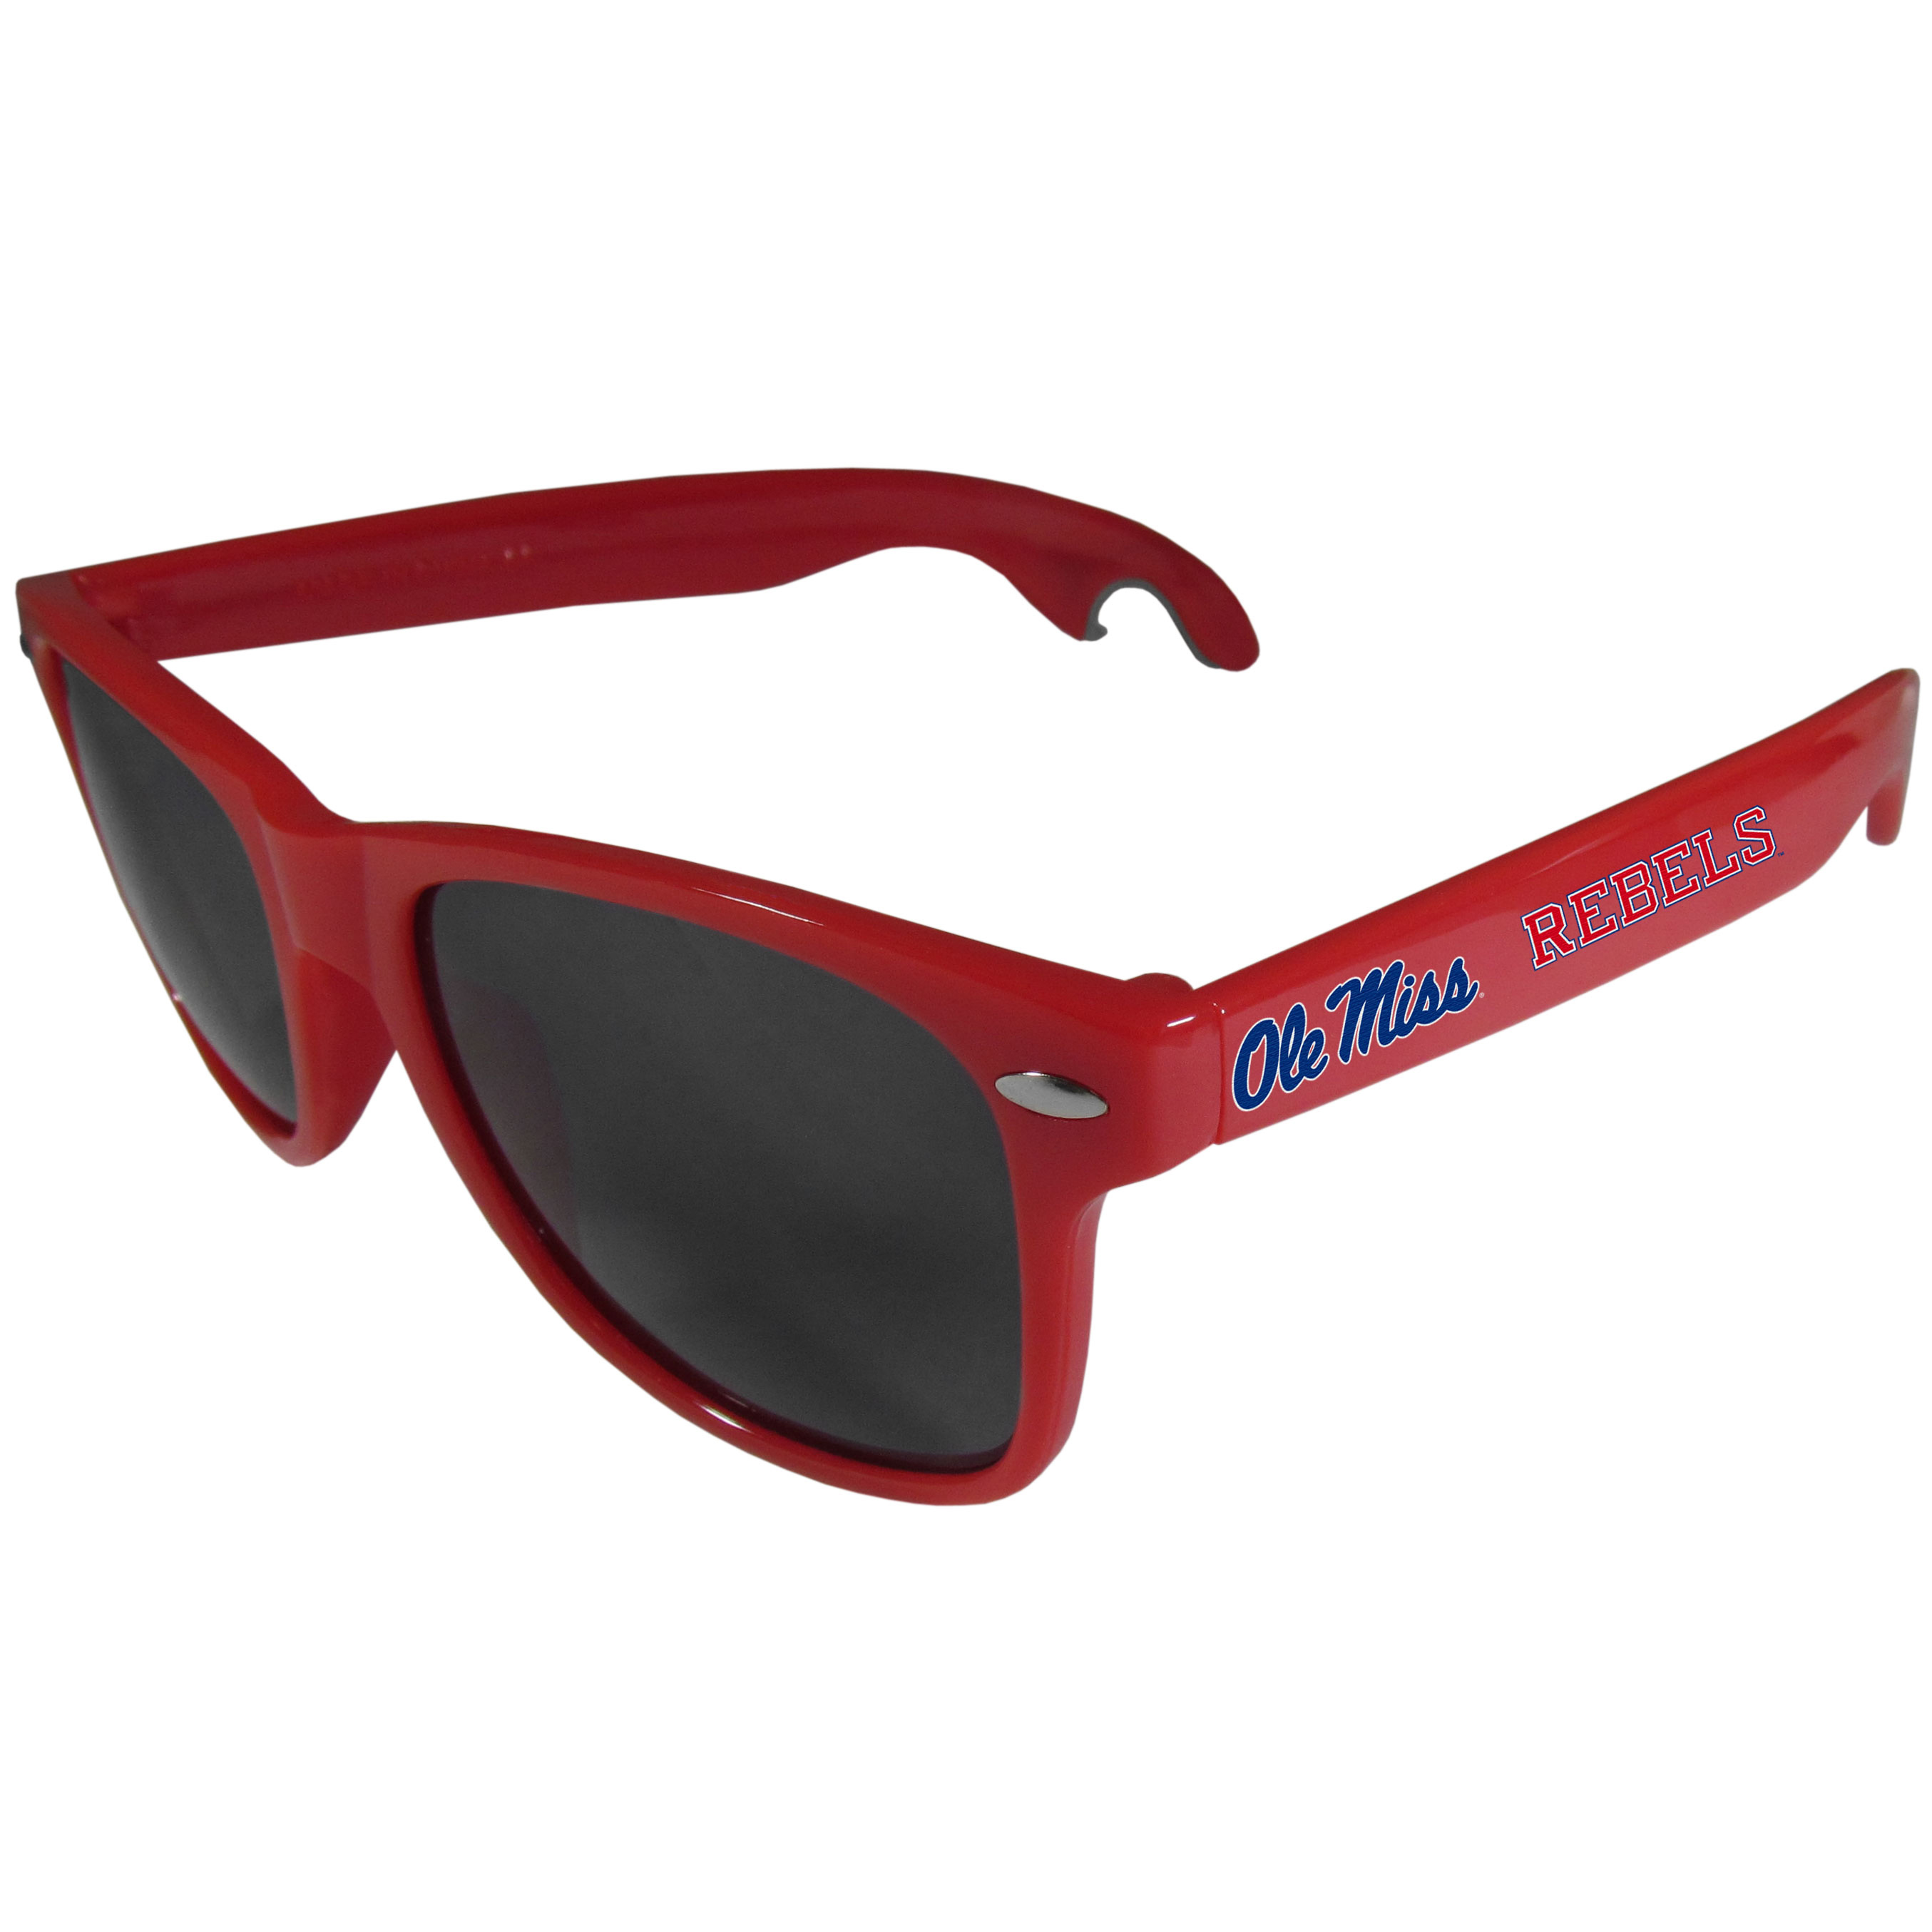 Mississippi Rebels Beachfarer Bottle Opener Sunglasses, Red - Seriously, these sunglasses open bottles! Keep the party going with these amazing Mississippi Rebels bottle opener sunglasses. The stylish retro frames feature team designs on the arms and functional bottle openers on the end of the arms. Whether you are at the beach or having a backyard BBQ on game day, these shades will keep your eyes protected with 100% UVA/UVB protection and keep you hydrated with the handy bottle opener arms.